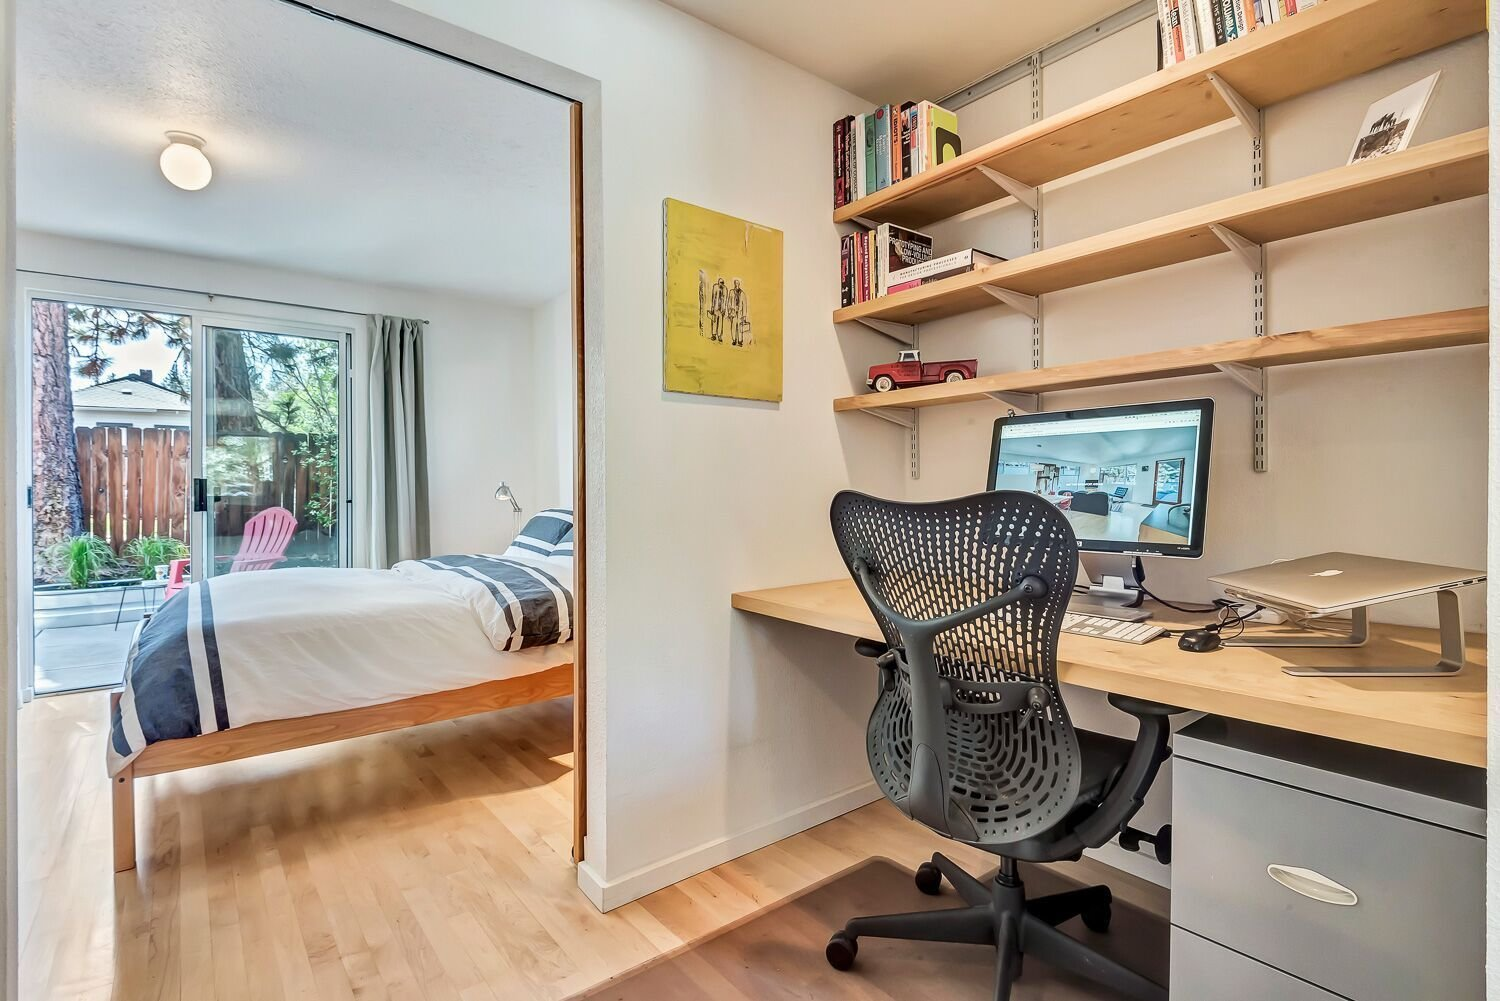 Office, Light Hardwood Floor, Shelves, Bookcase, Study Room Type, Chair, and Desk Two identical office spaces make it easy to work from home.   The Mod Ranch